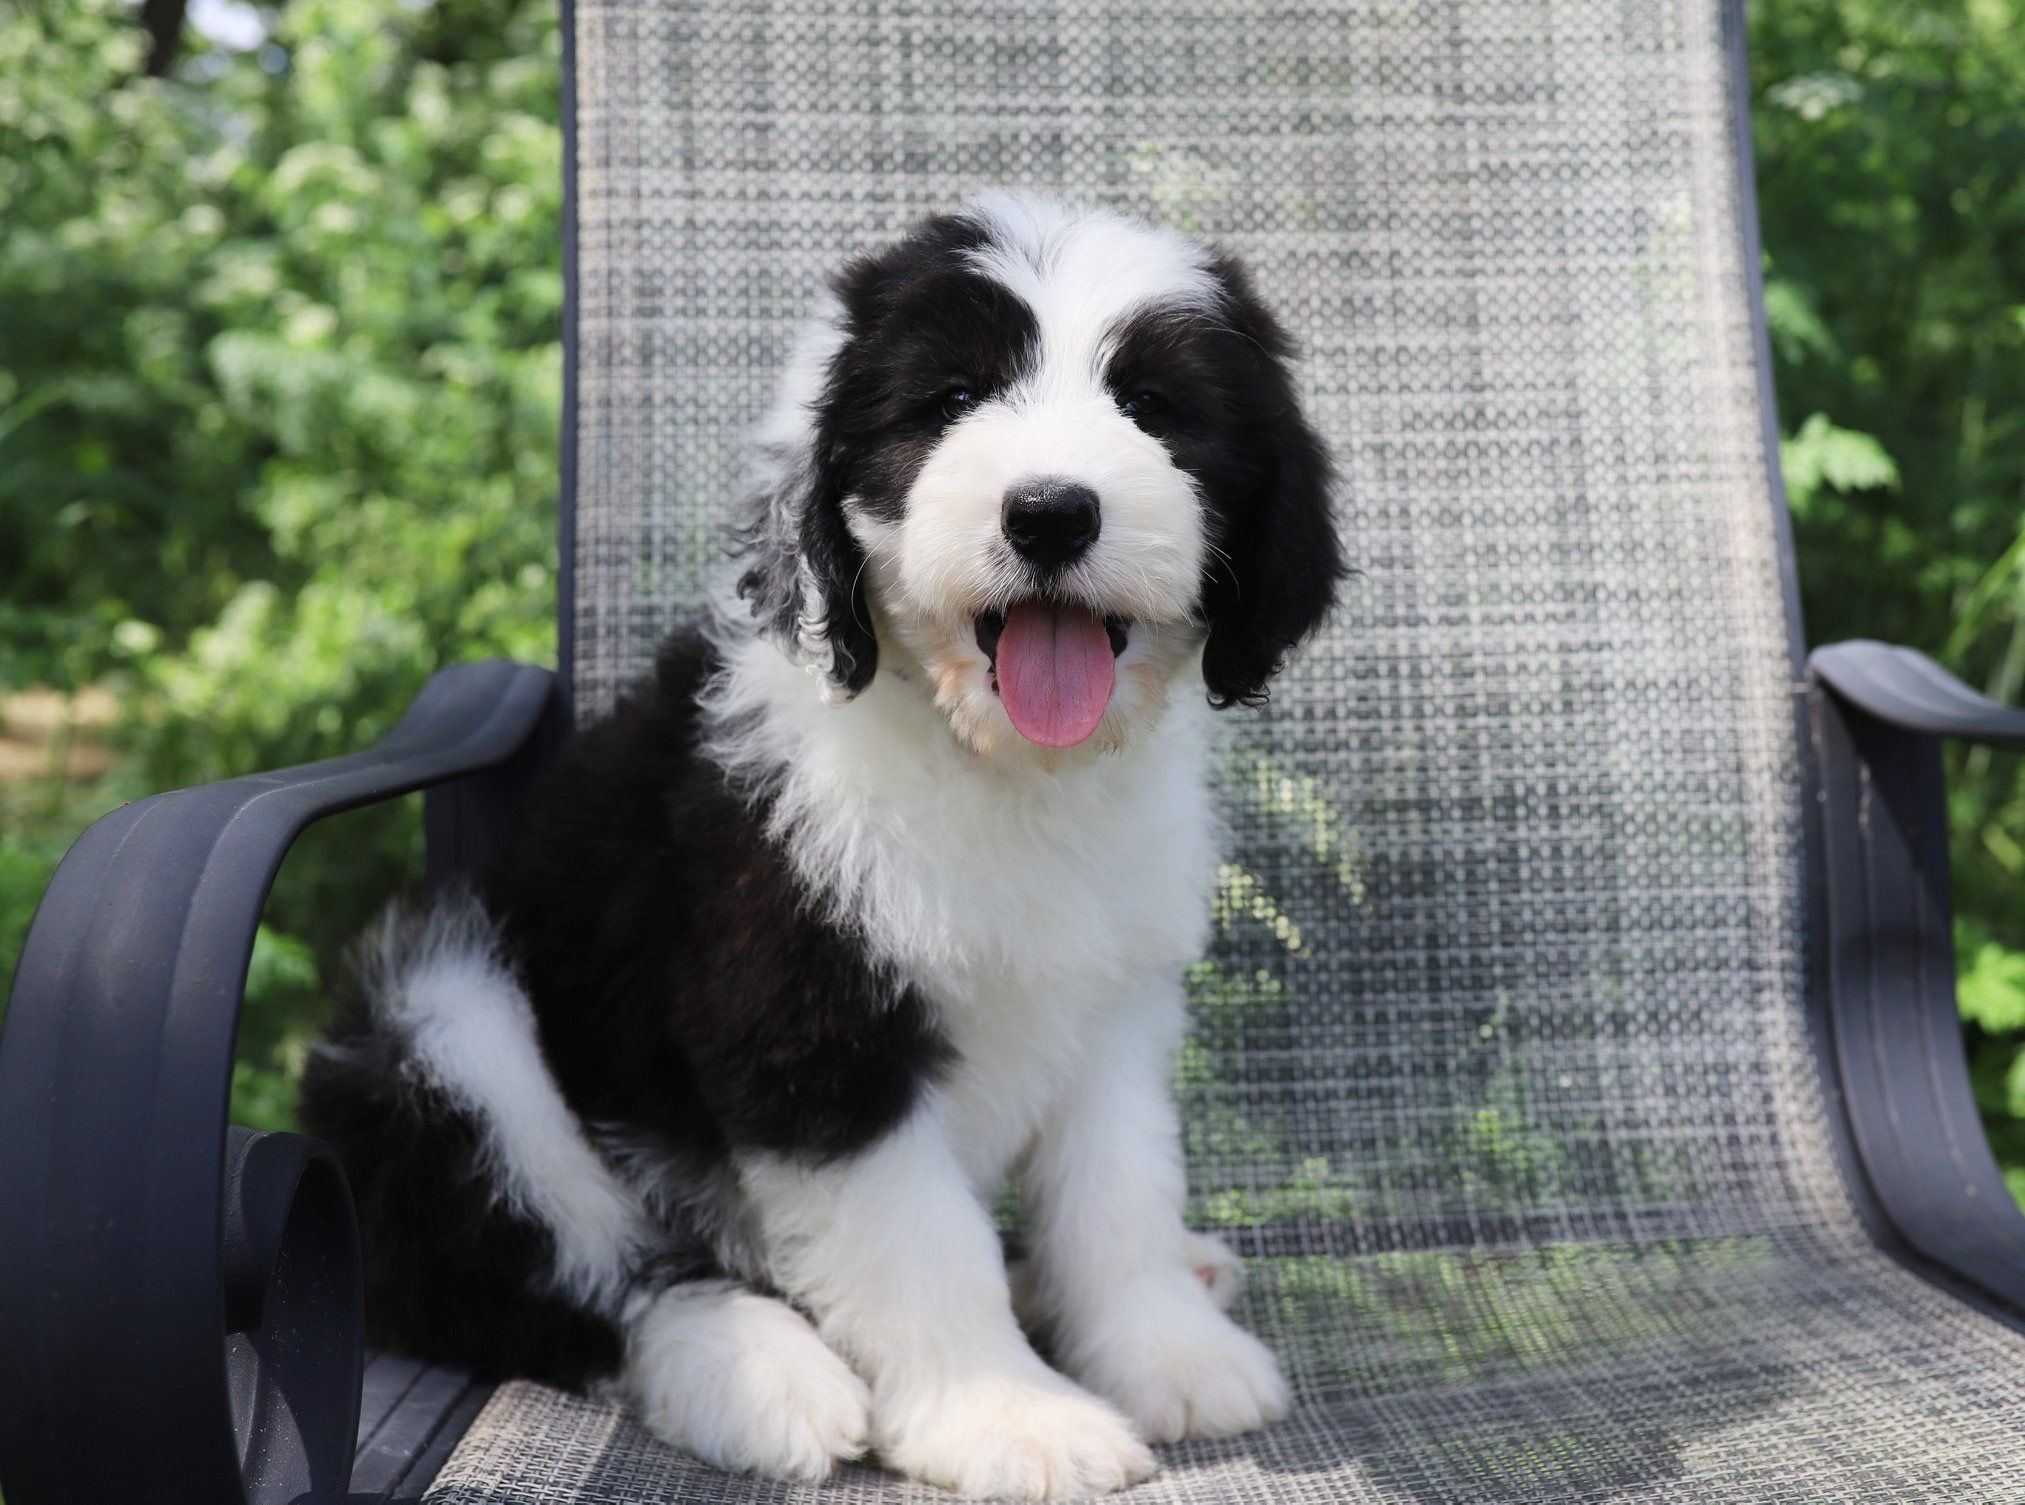 F1 Standard Sheepadoodle Puppy From My Fair Doodles